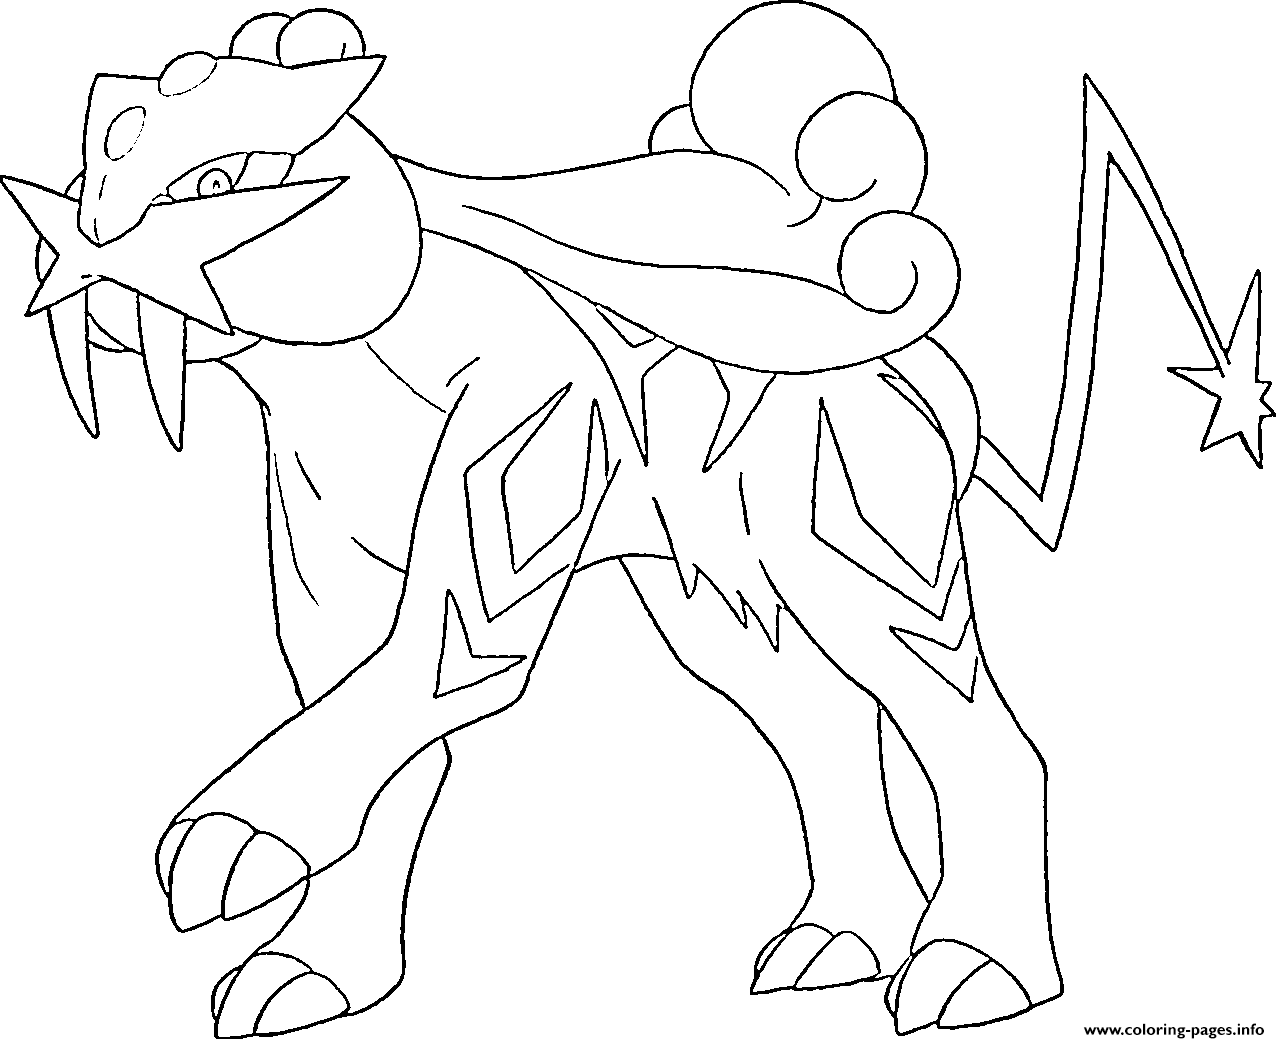 How To Improve At Suicune Coloring Page In 60 Minutes